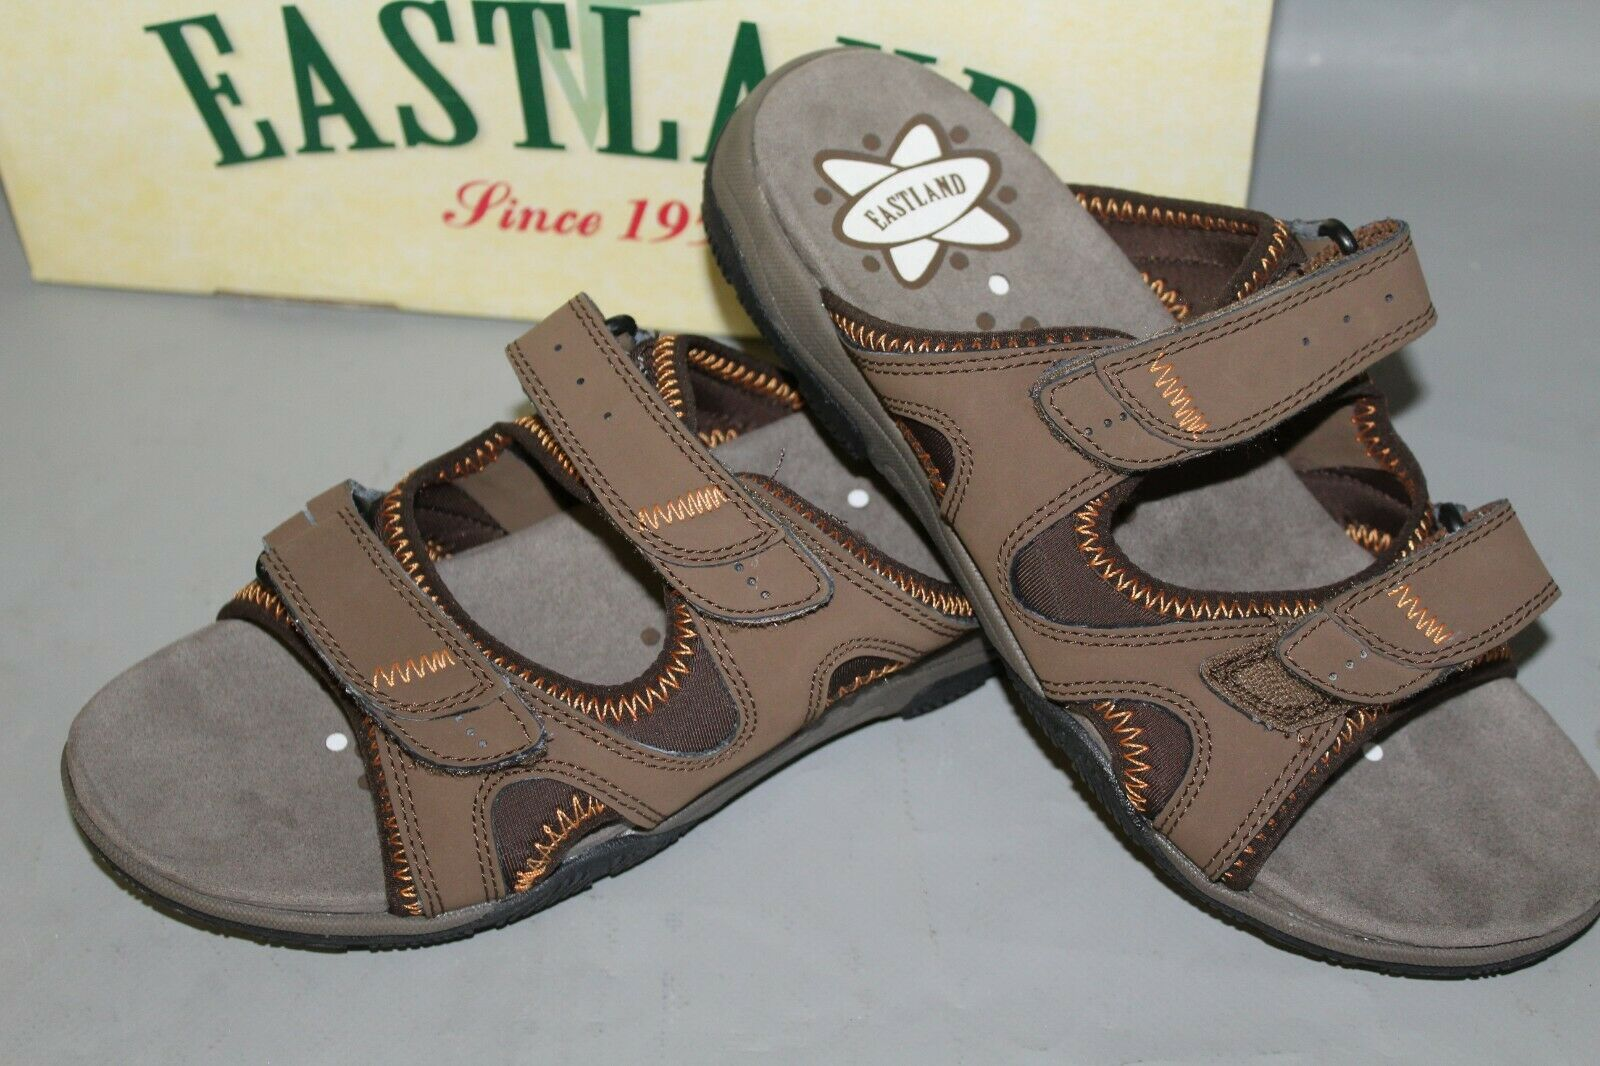 NEW Women's Eastland Summit Size 10 Medium Brown Comfortable, Supportive Slides